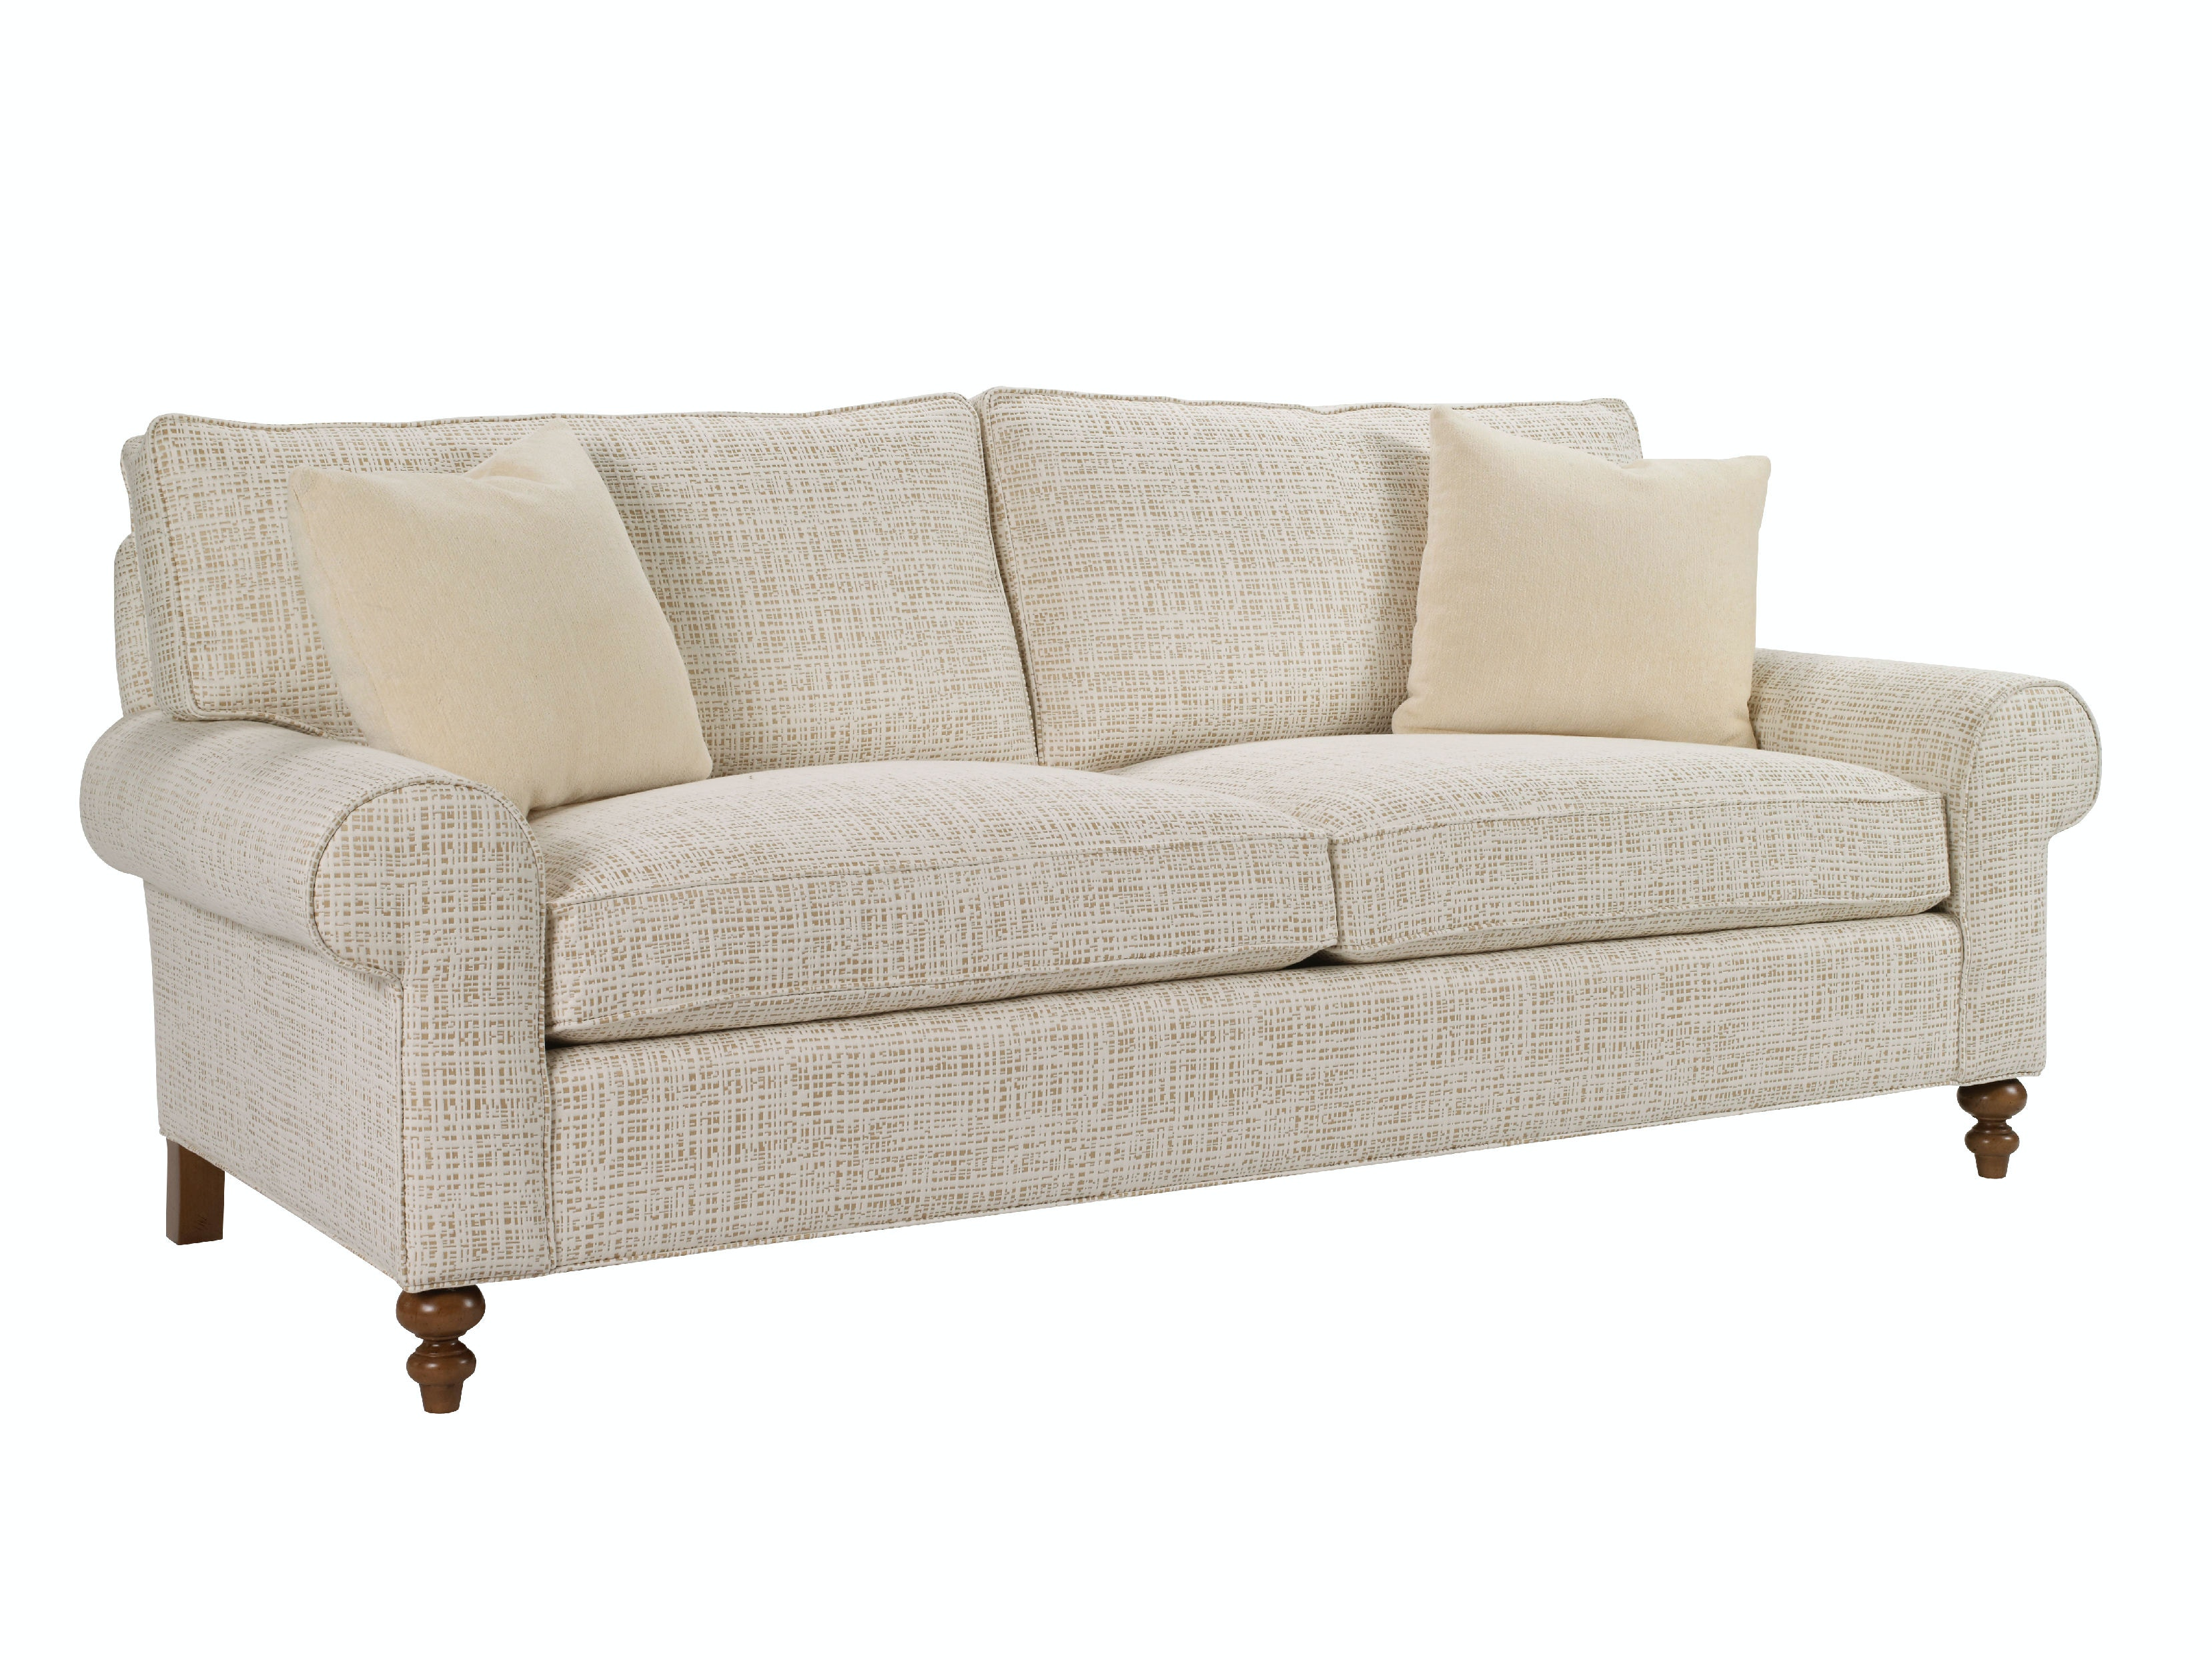 EJ Victor As You Like It Plus Lawson Arm Two Seat Sofa 673 80